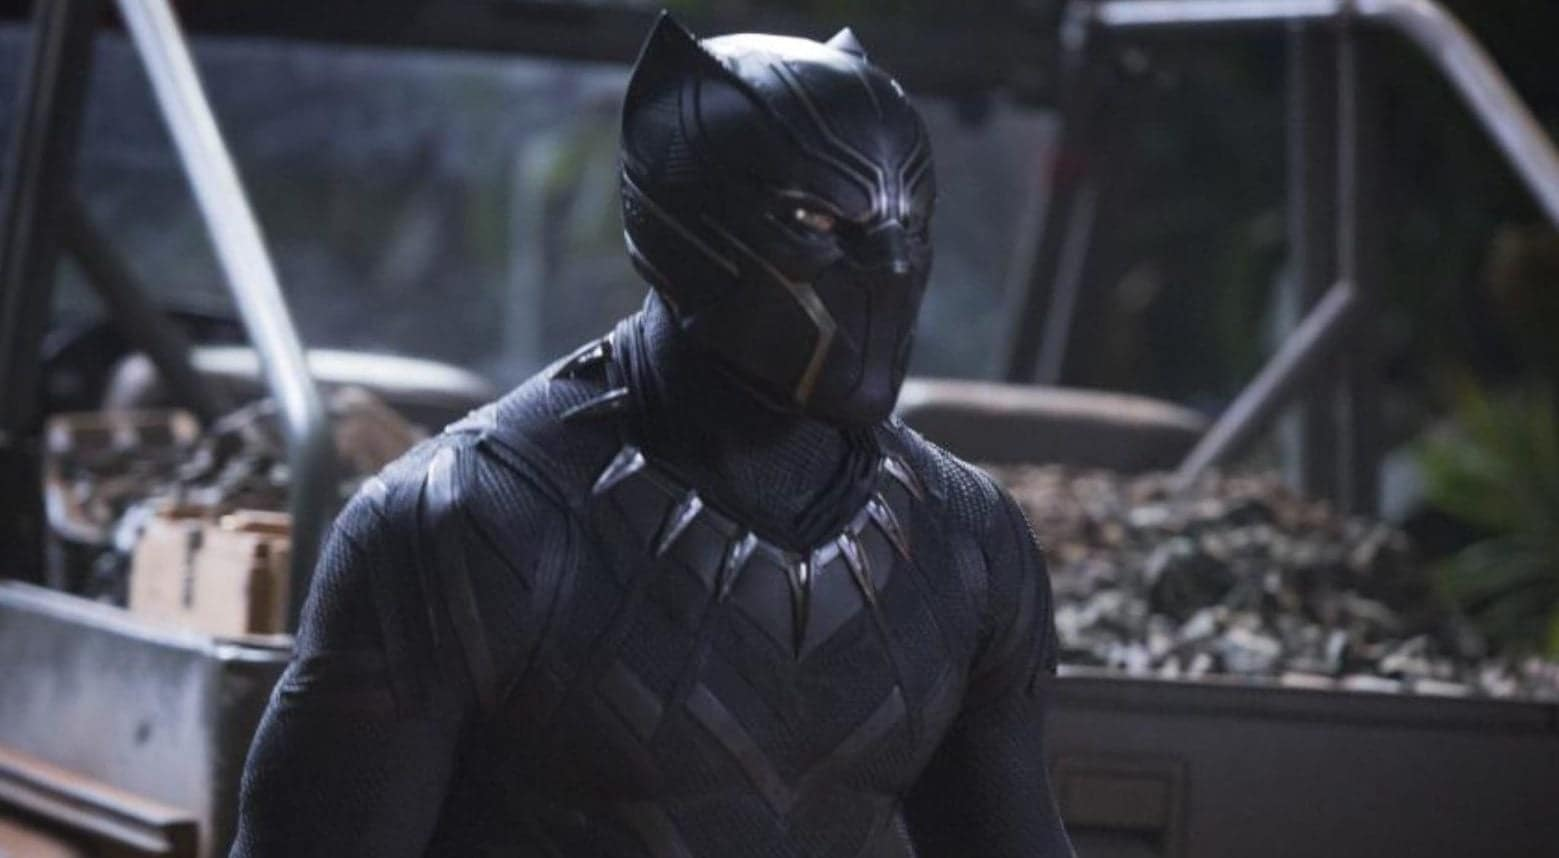 'Black Panther' Remains Box-Office Champ For Third Consecutive Week